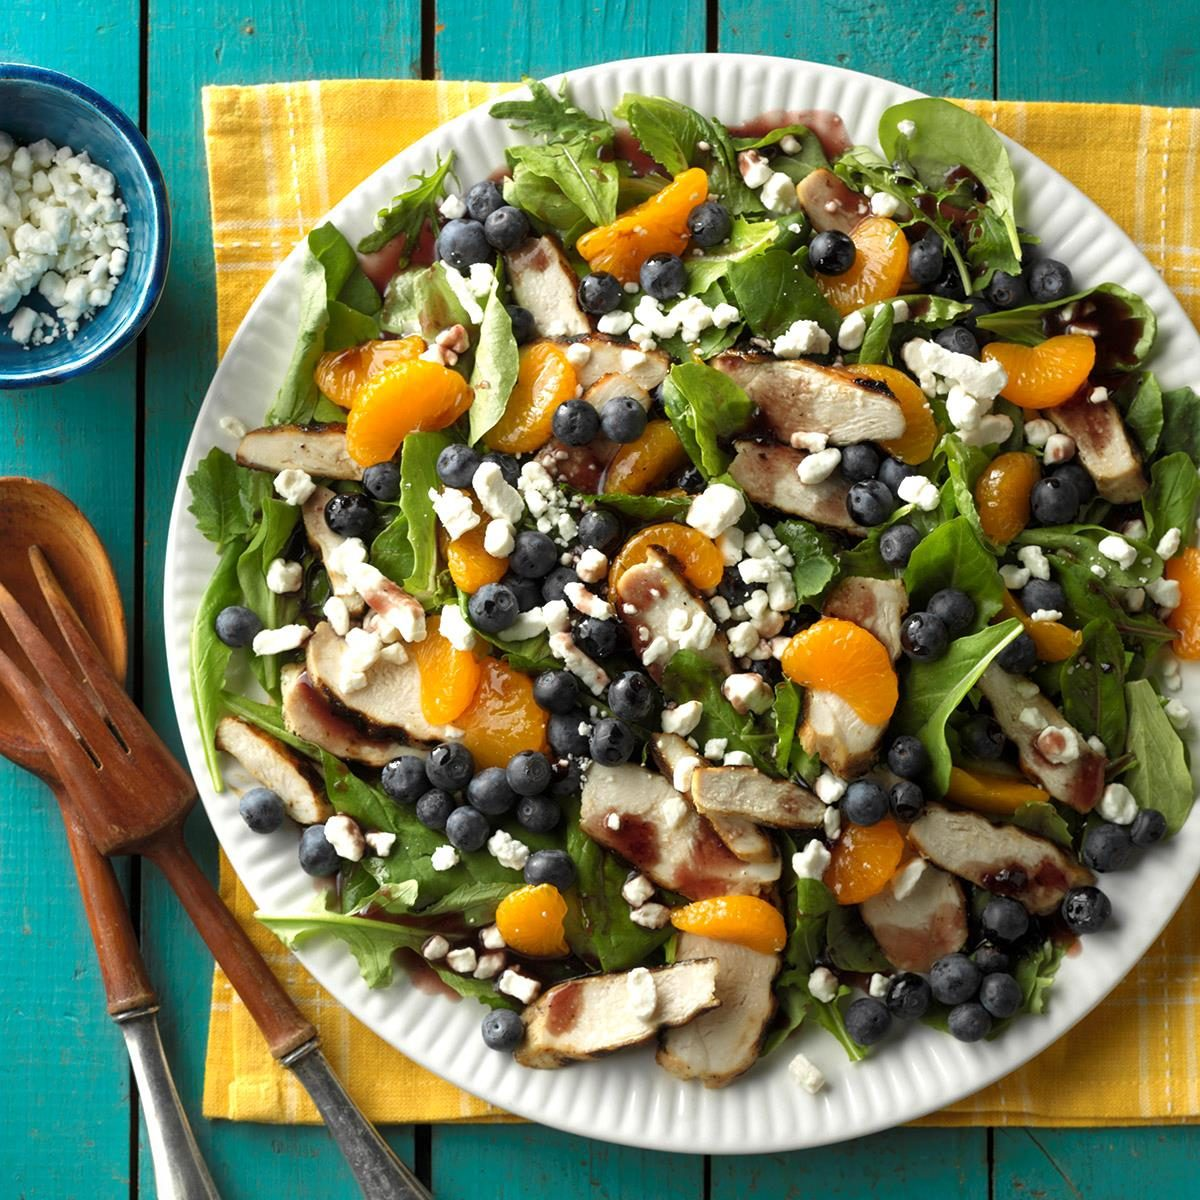 Grilled Chicken Salad with Blueberry Vinaigrette